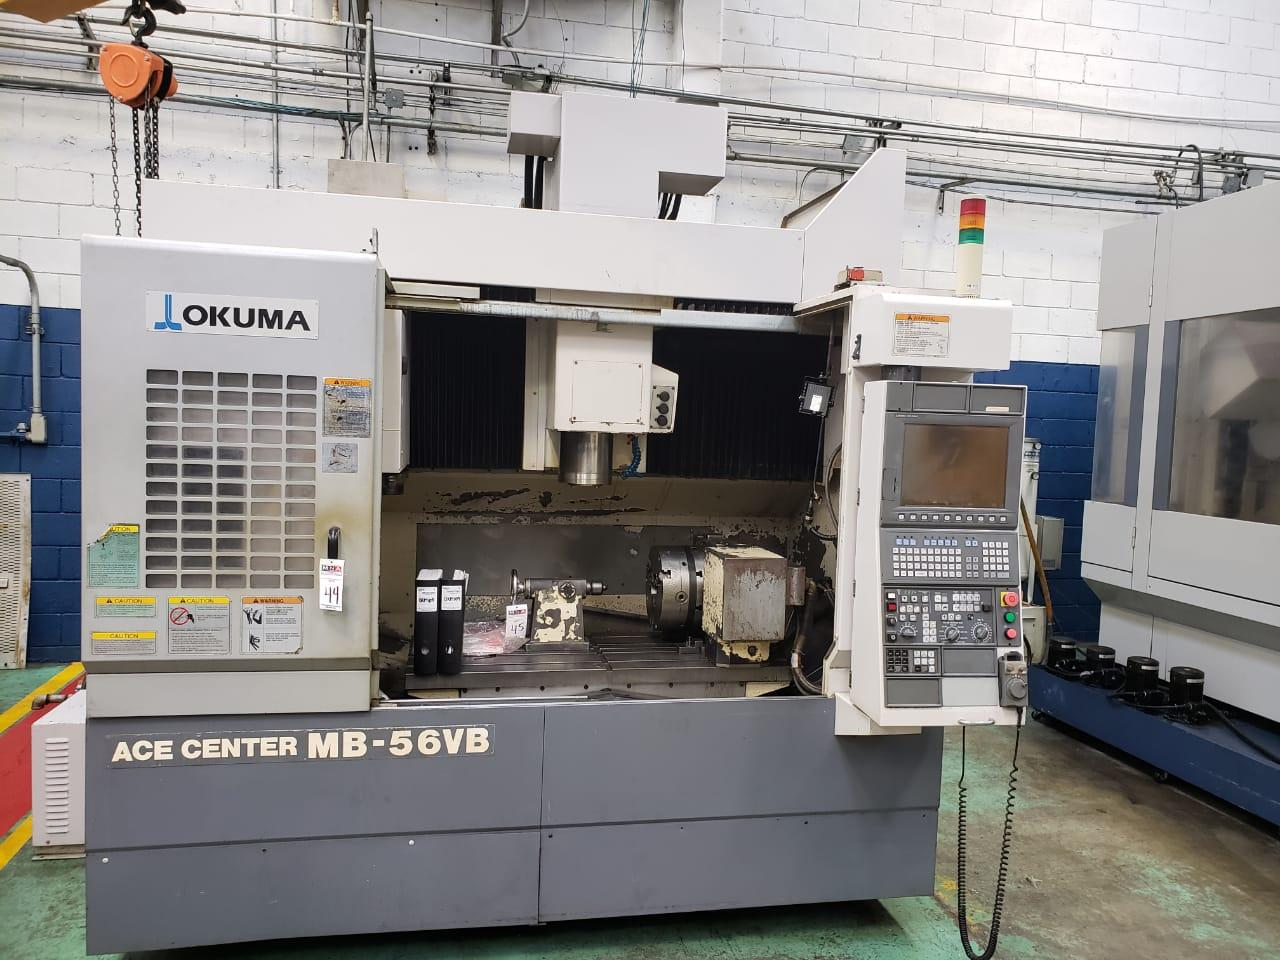 2007 Okuma Ace Center MB-56VB - Vertical Machining Center